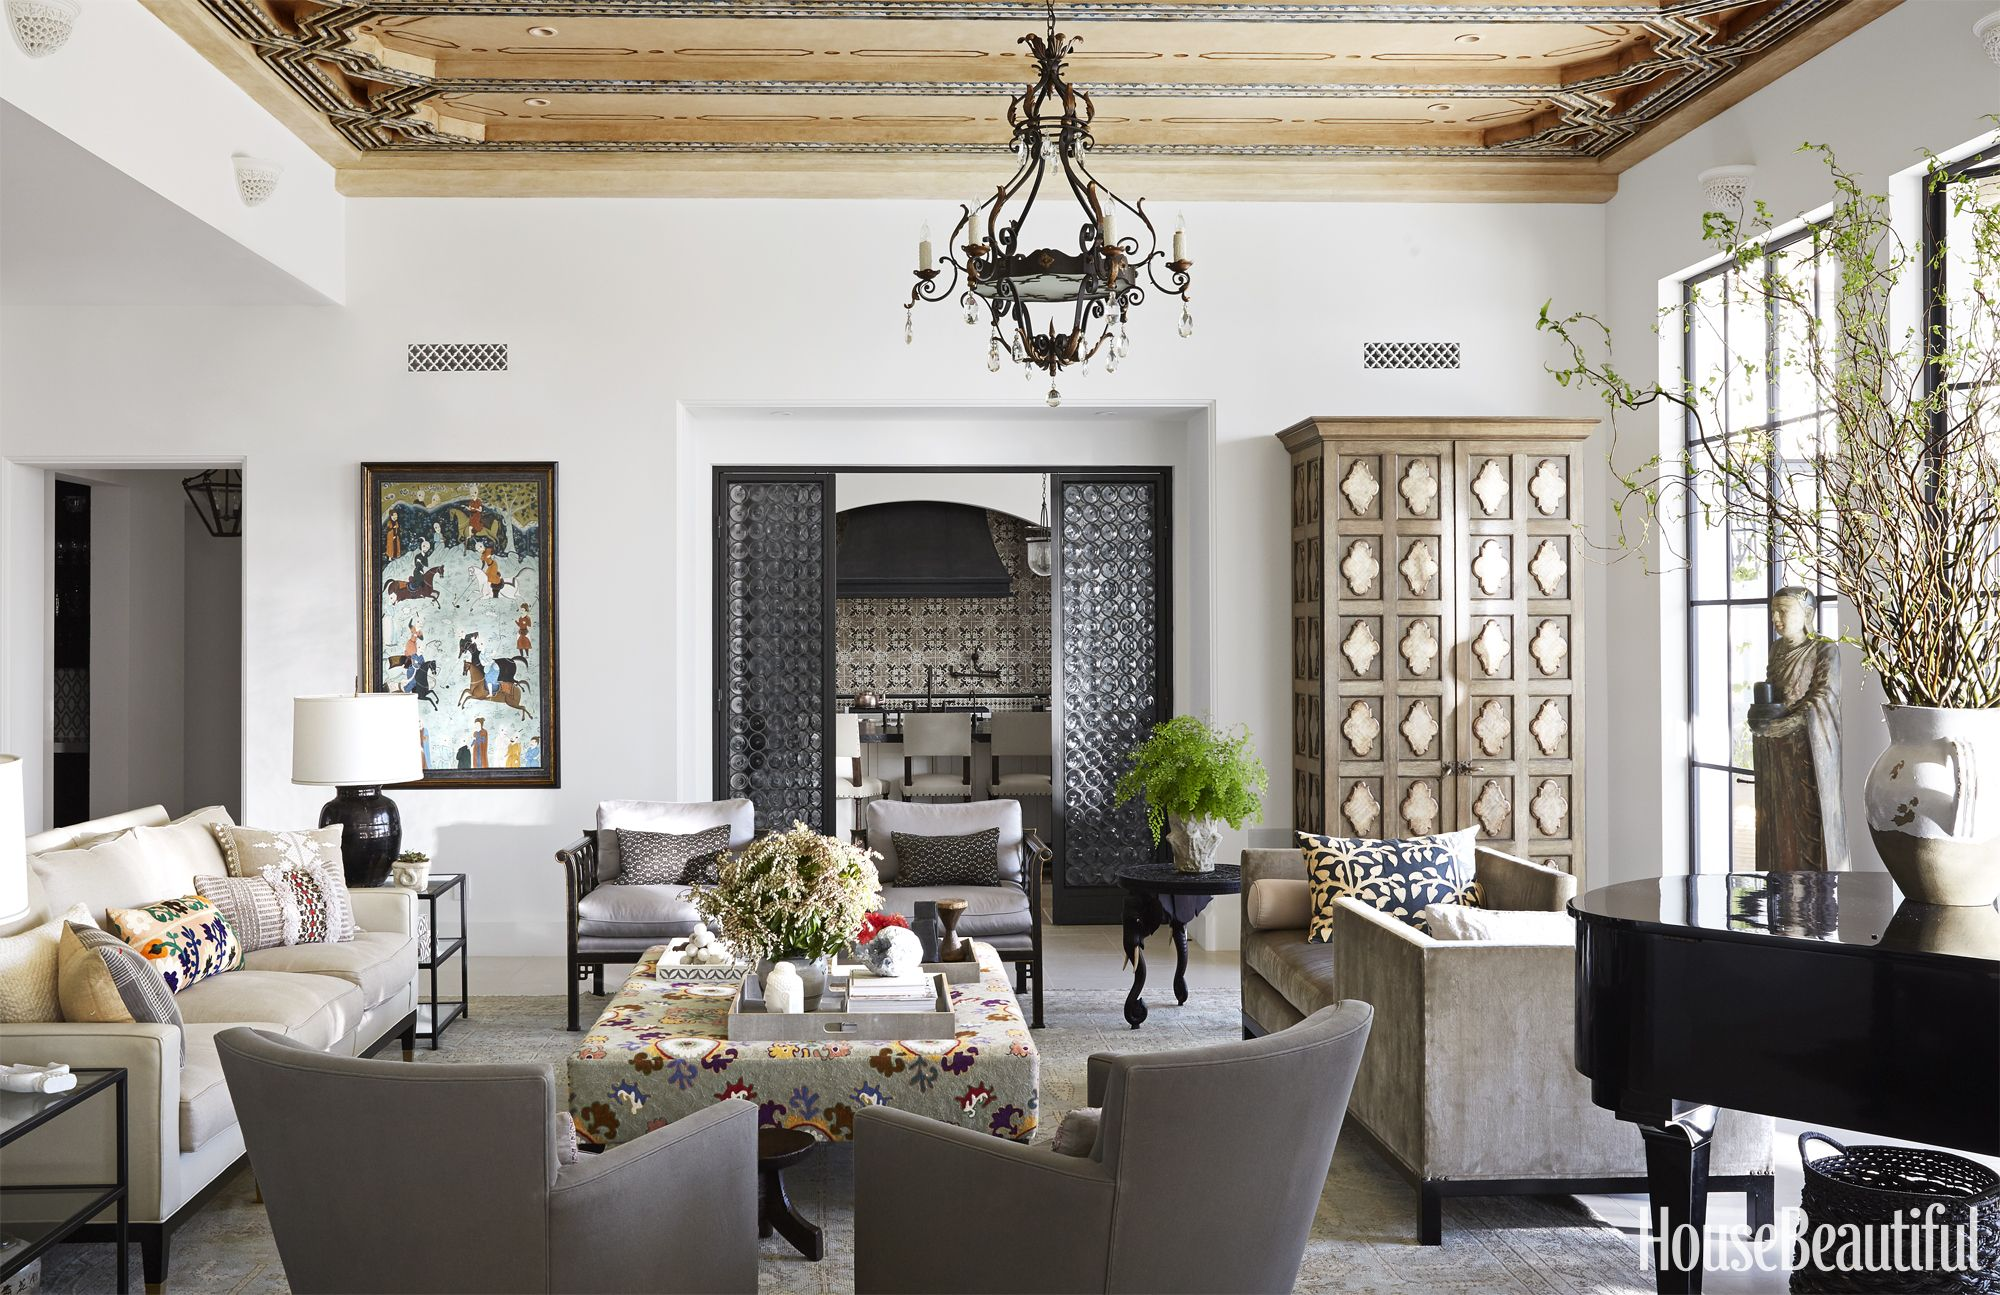 Moroccan Themed Living Room Moroccan Inspired Furniture Moroccan Painted Cabinets3 Inspired